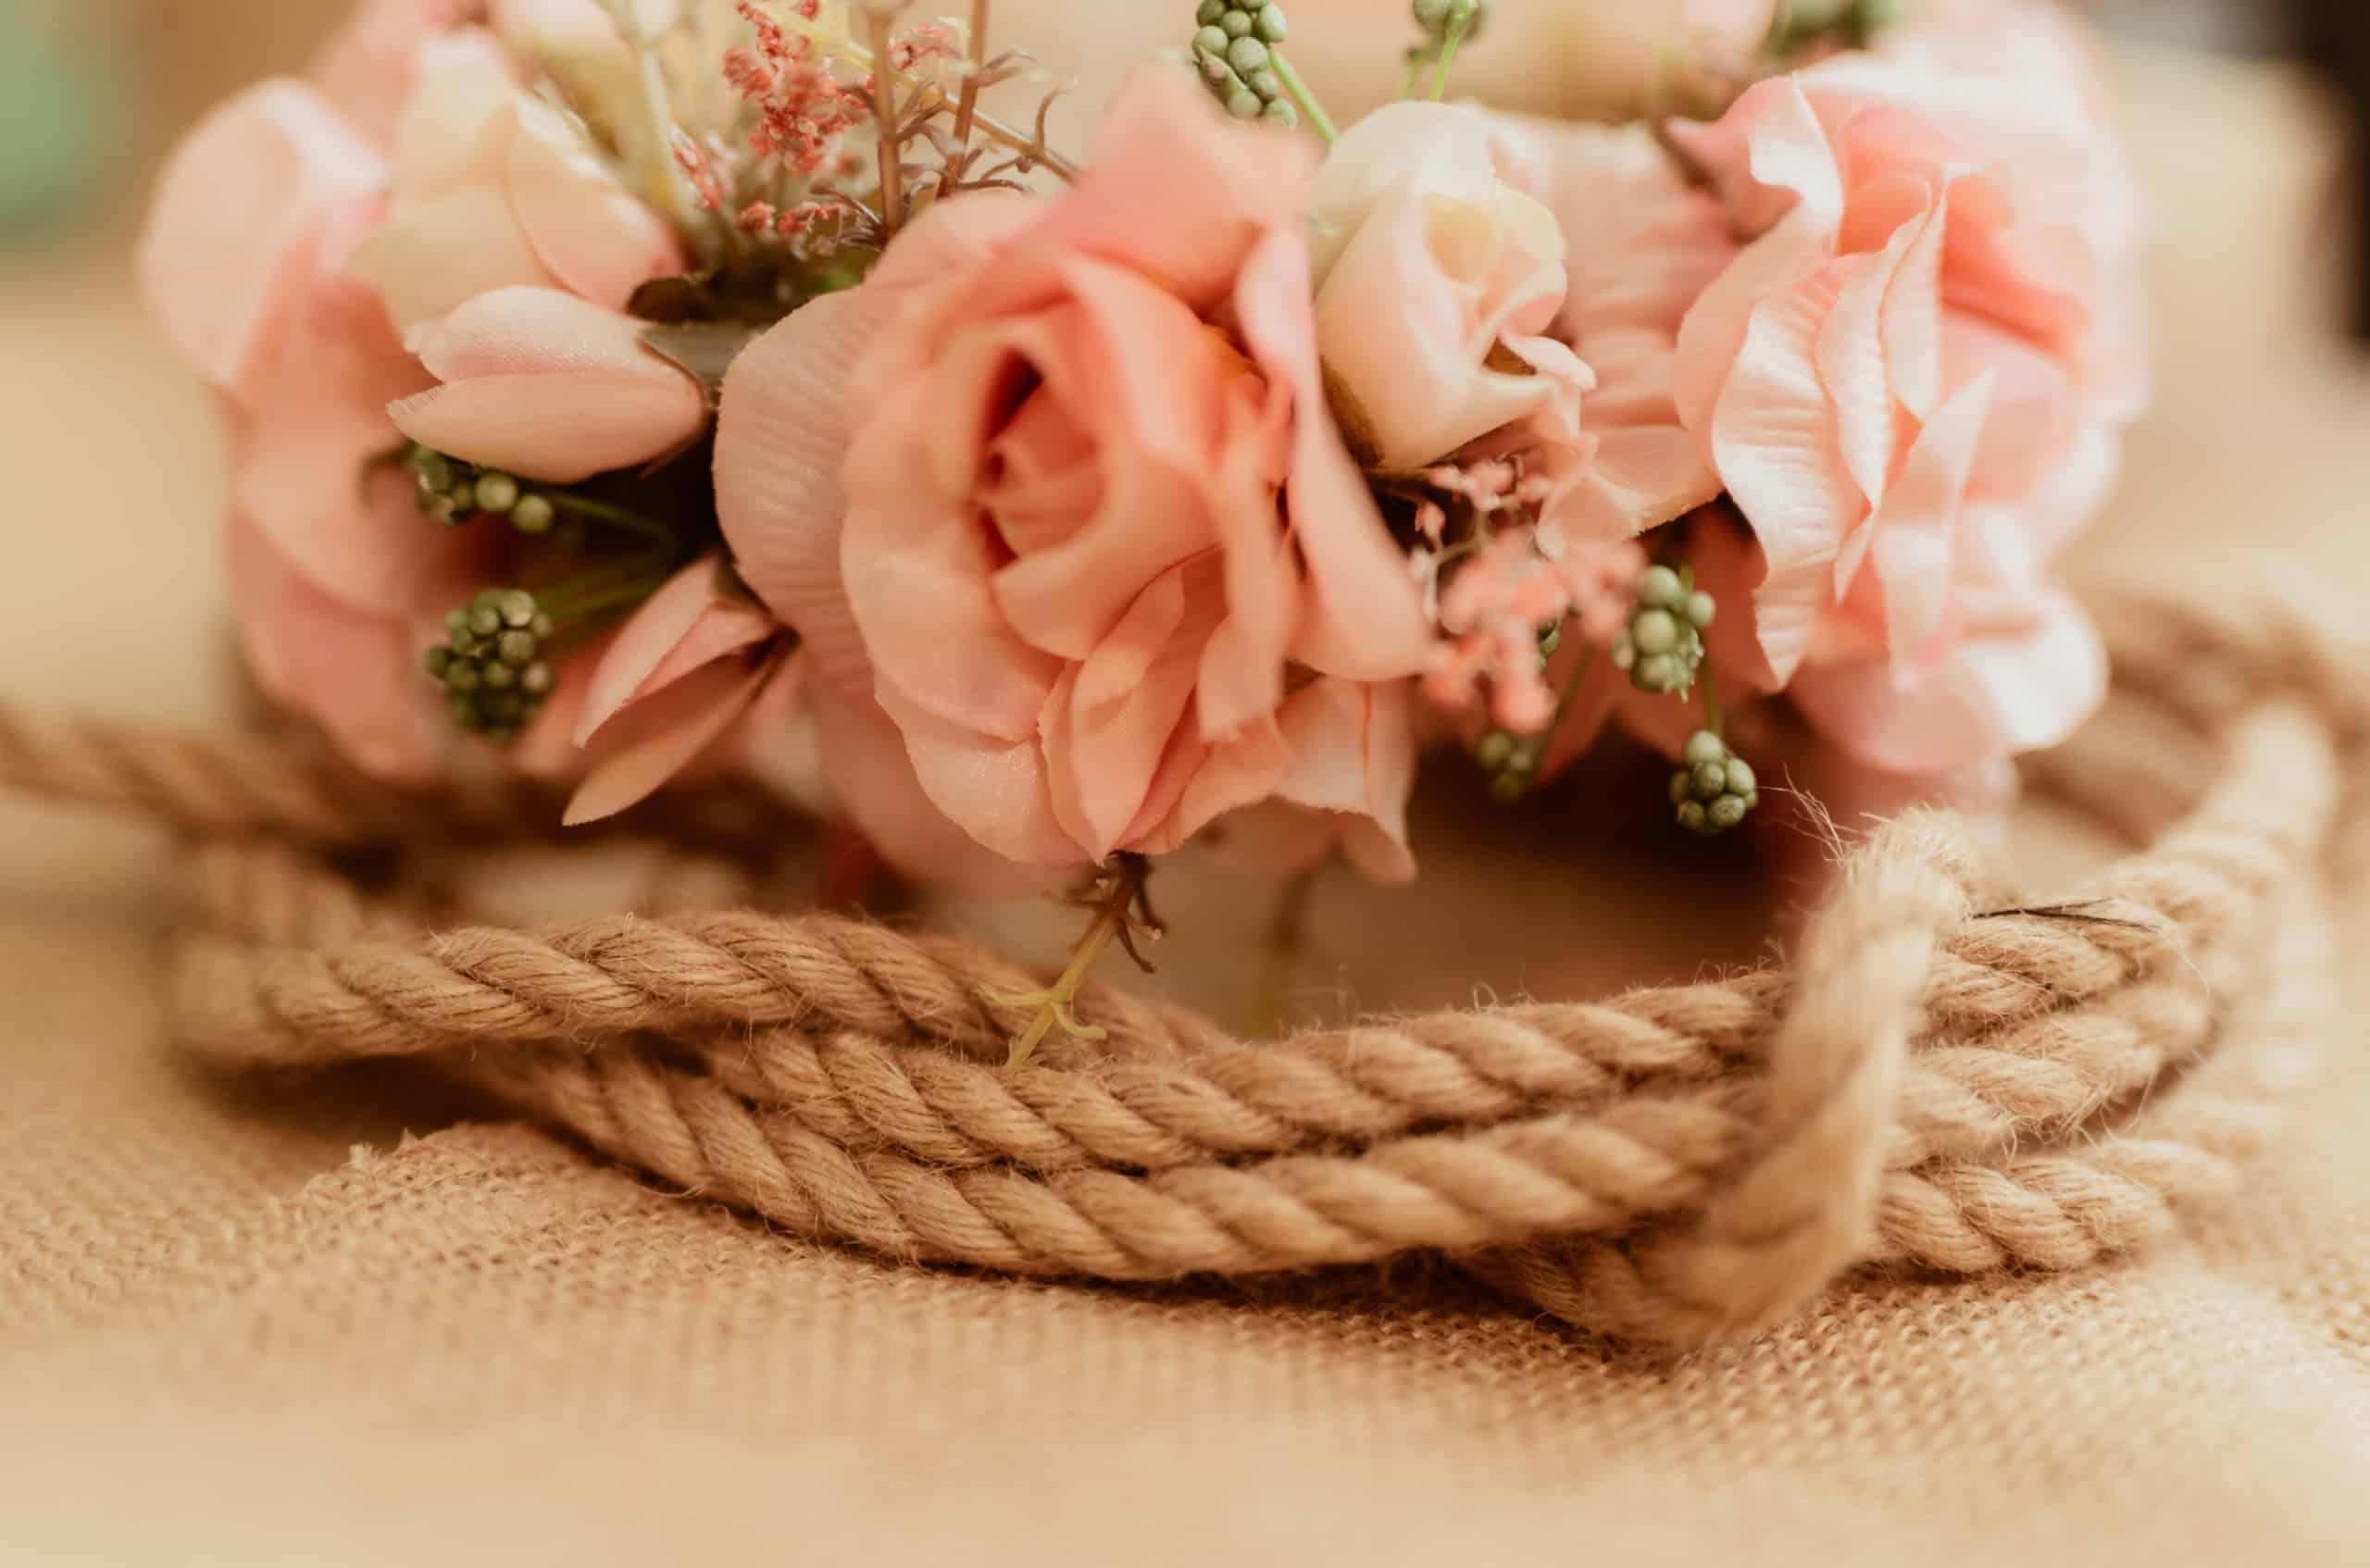 natural tones rope and flowers on burlap 3ZHNKSL scaled